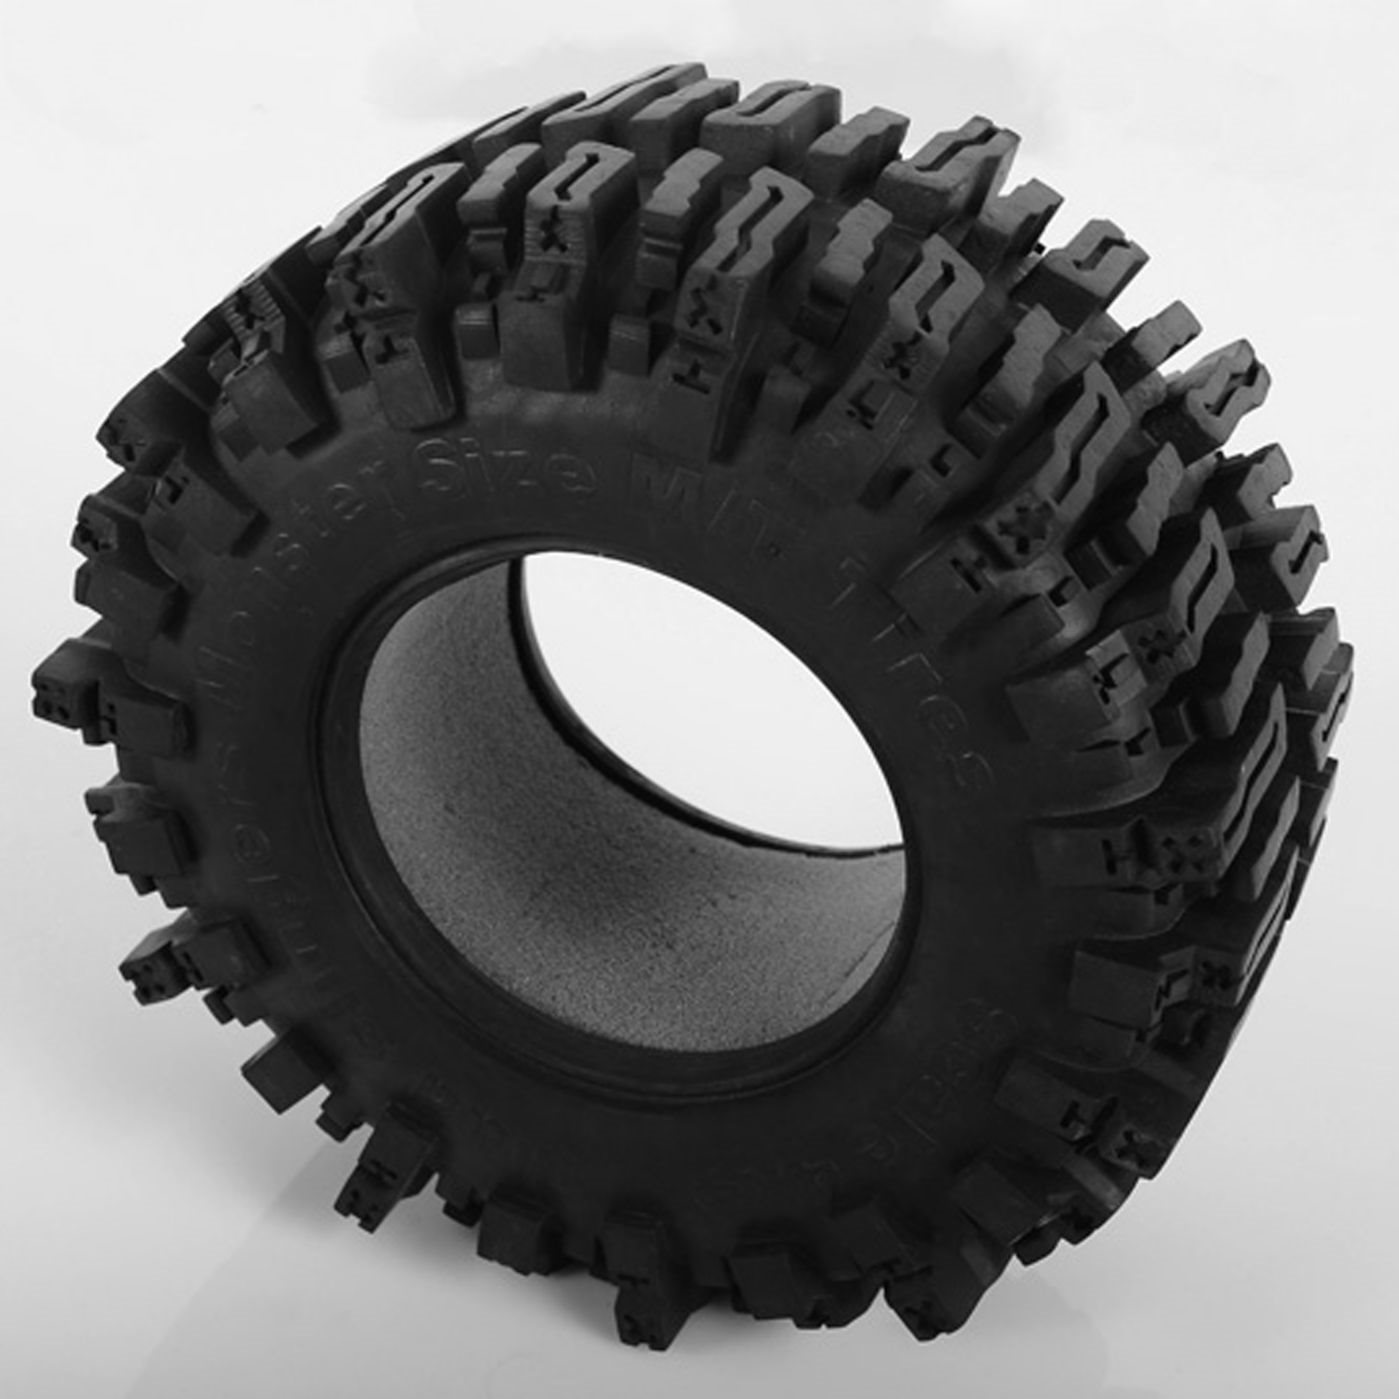 "RC 4WD Mud Slingers Monster Size 40 Series 3.8"" Tires"